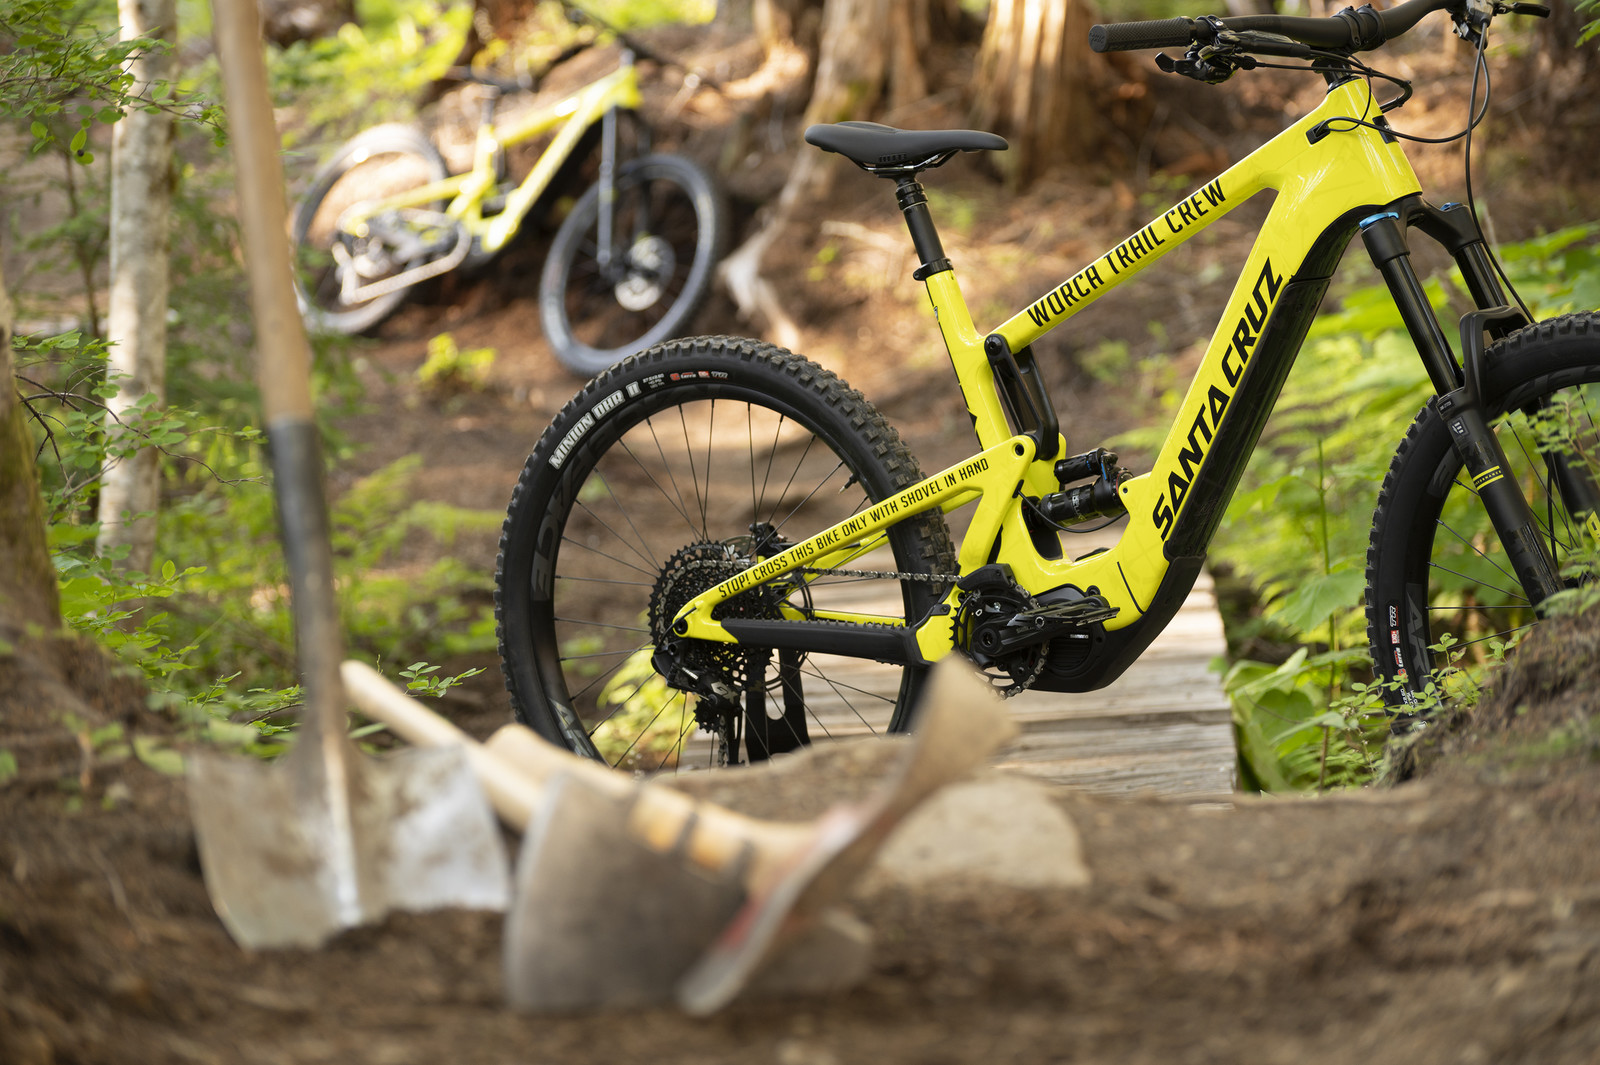 Santa Cruz Bicycles and RideWrap teamed up to donate two Hecklers with Tailored Protection to W.O.R.C.A.